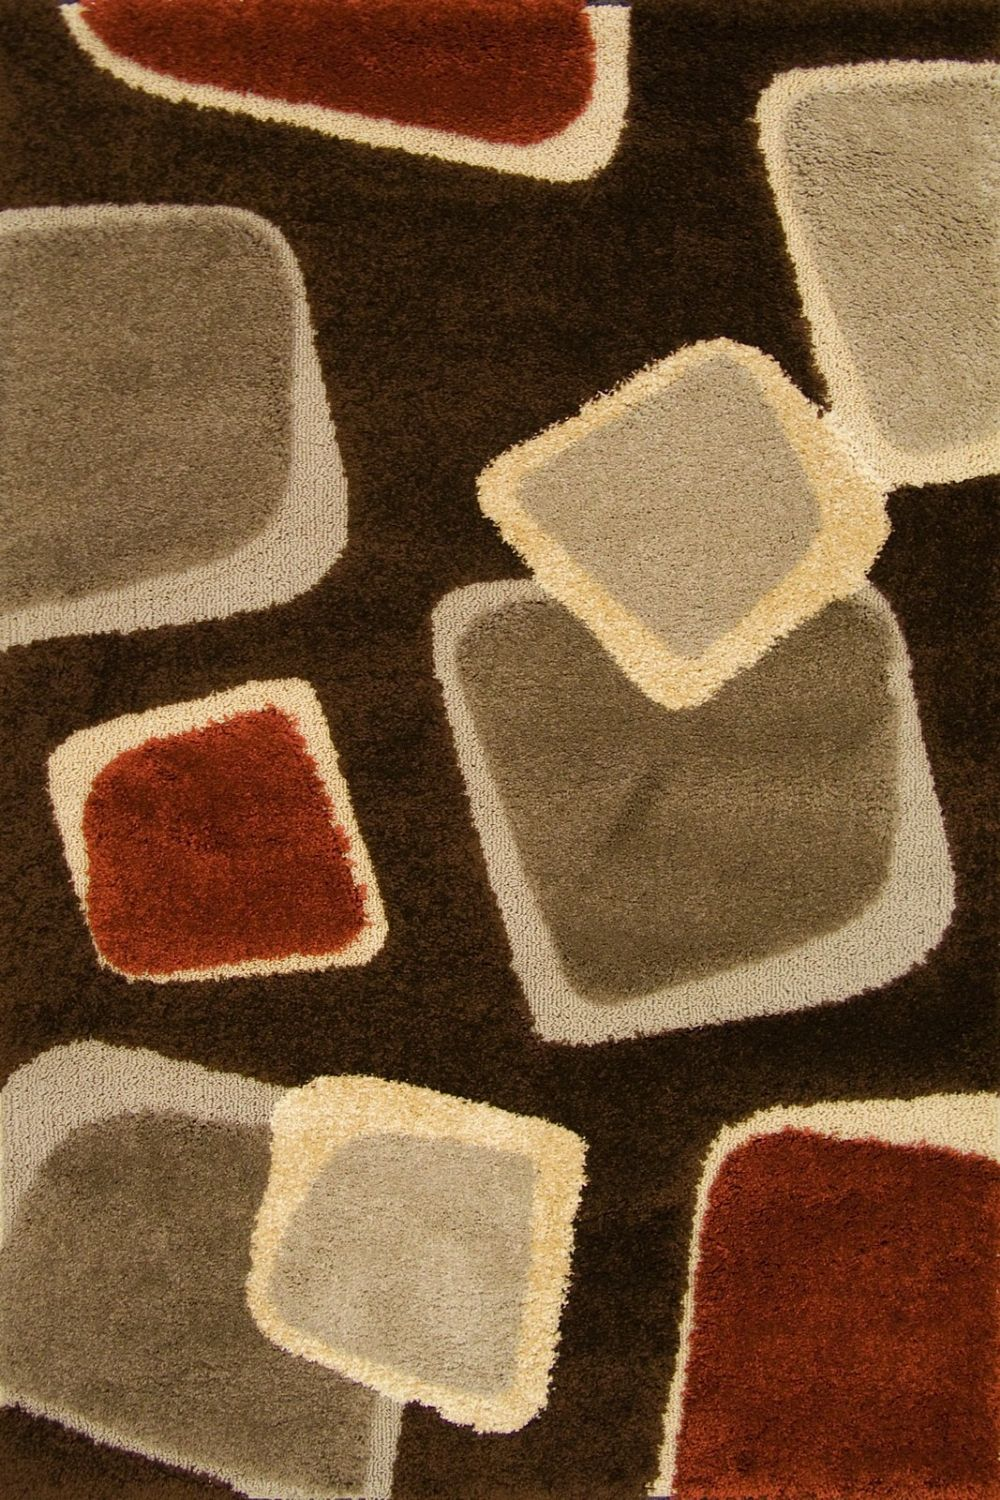 central oriental radiance skins contemporary area rug collection